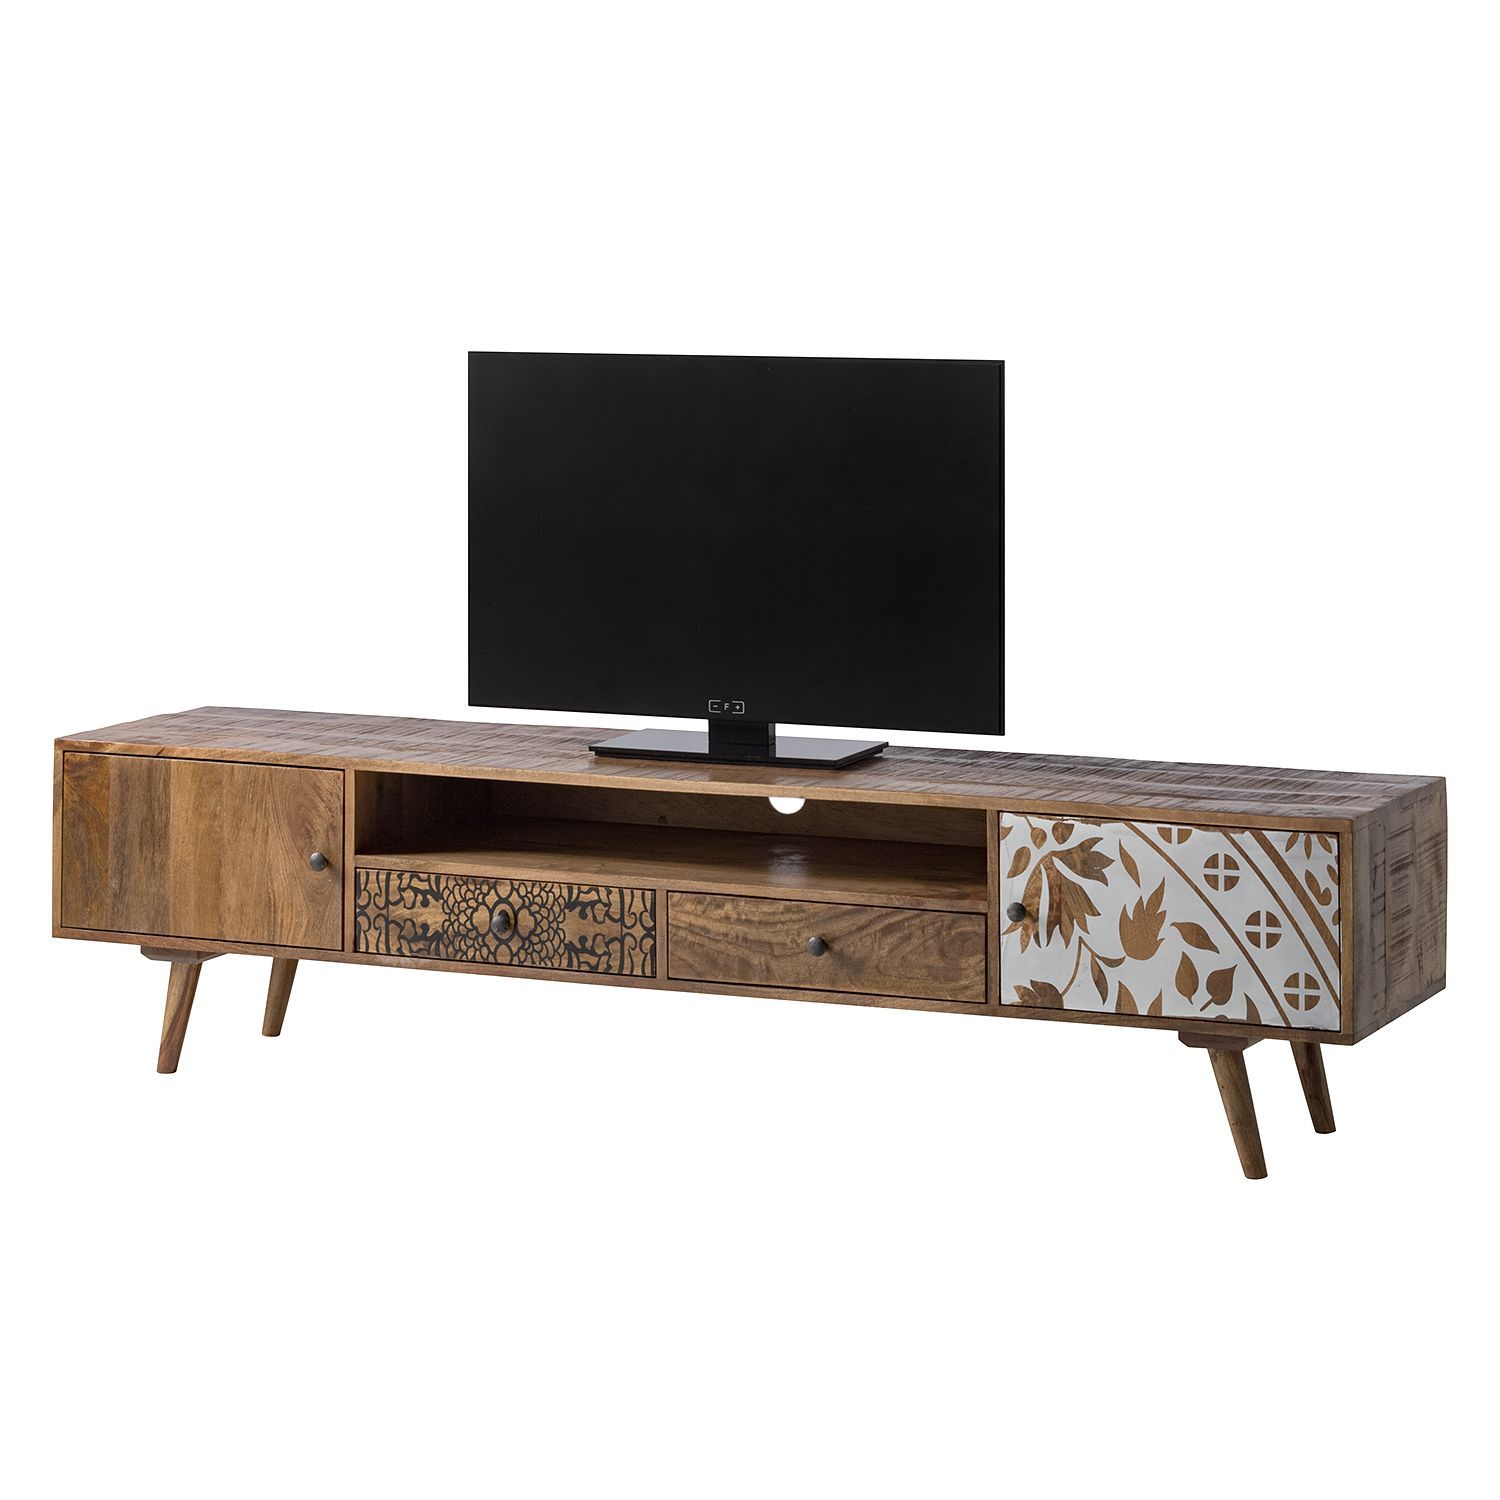 Tv Lowboard Bloomingville Ii Tv Hifi Mobel Tv Mobel Lowboard